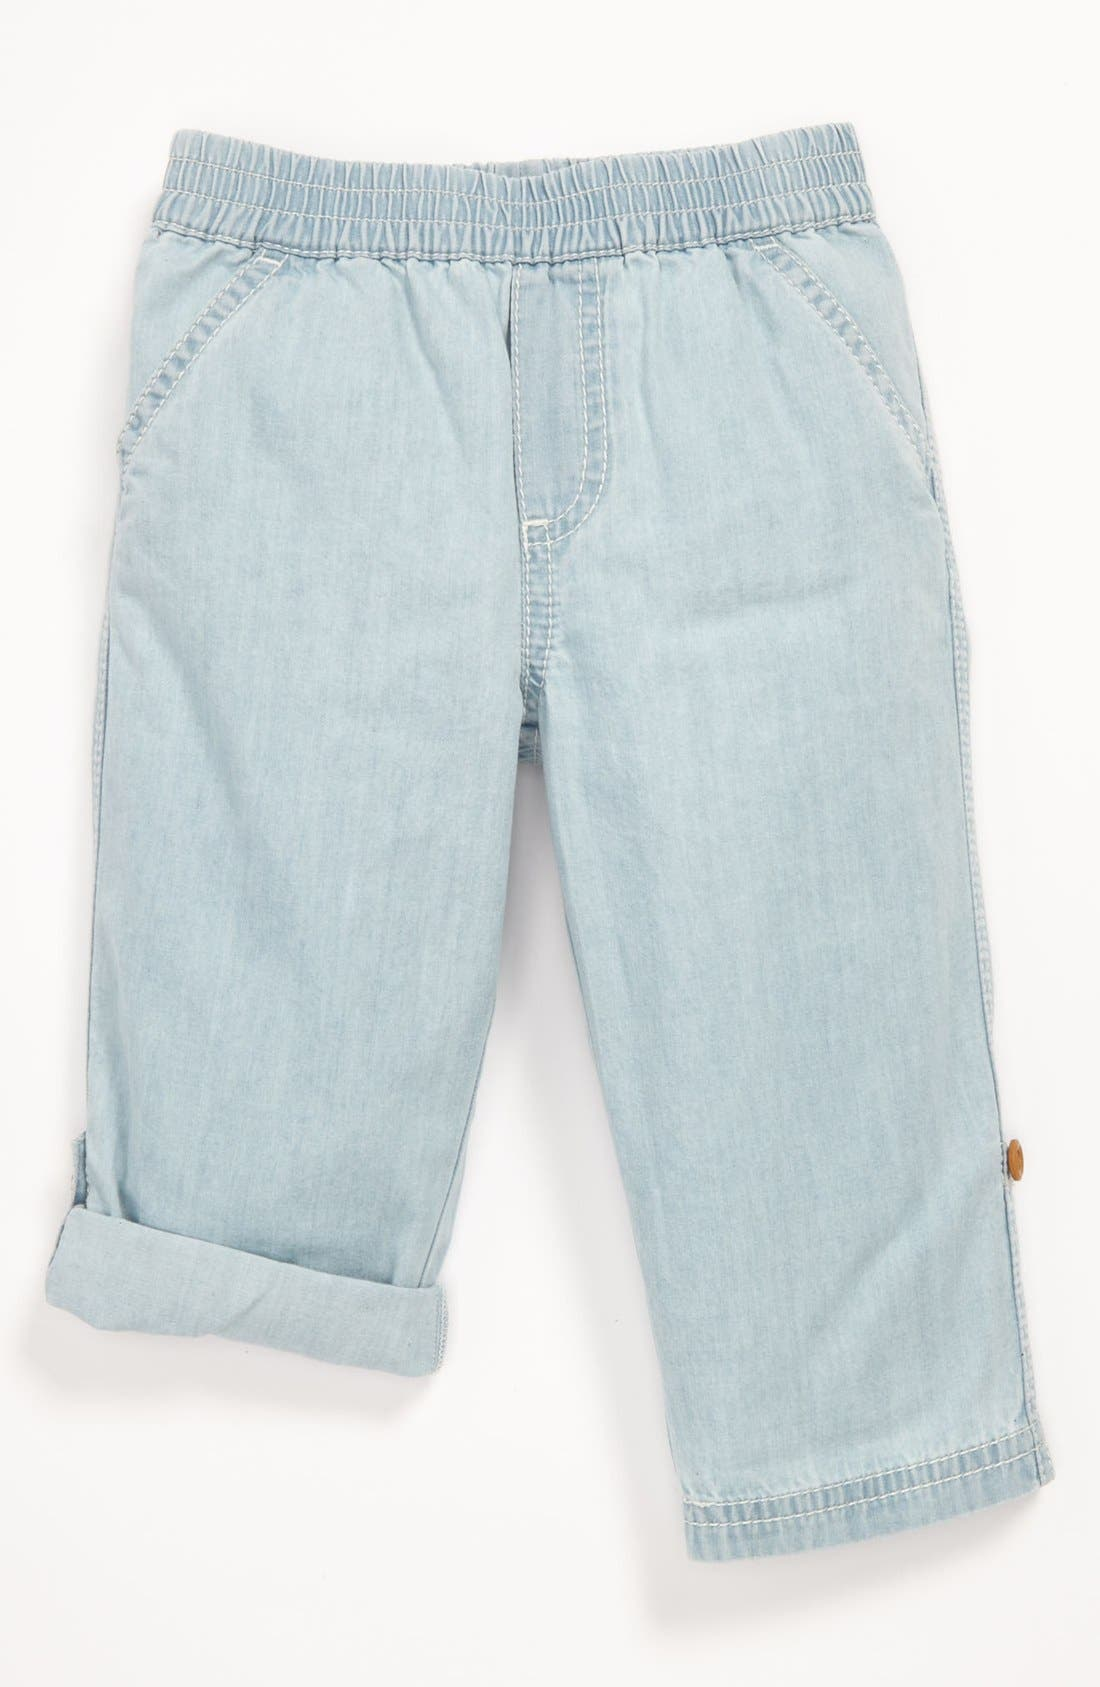 Alternate Image 1 Selected - Nordstrom Baby Convertible Pants (Baby)